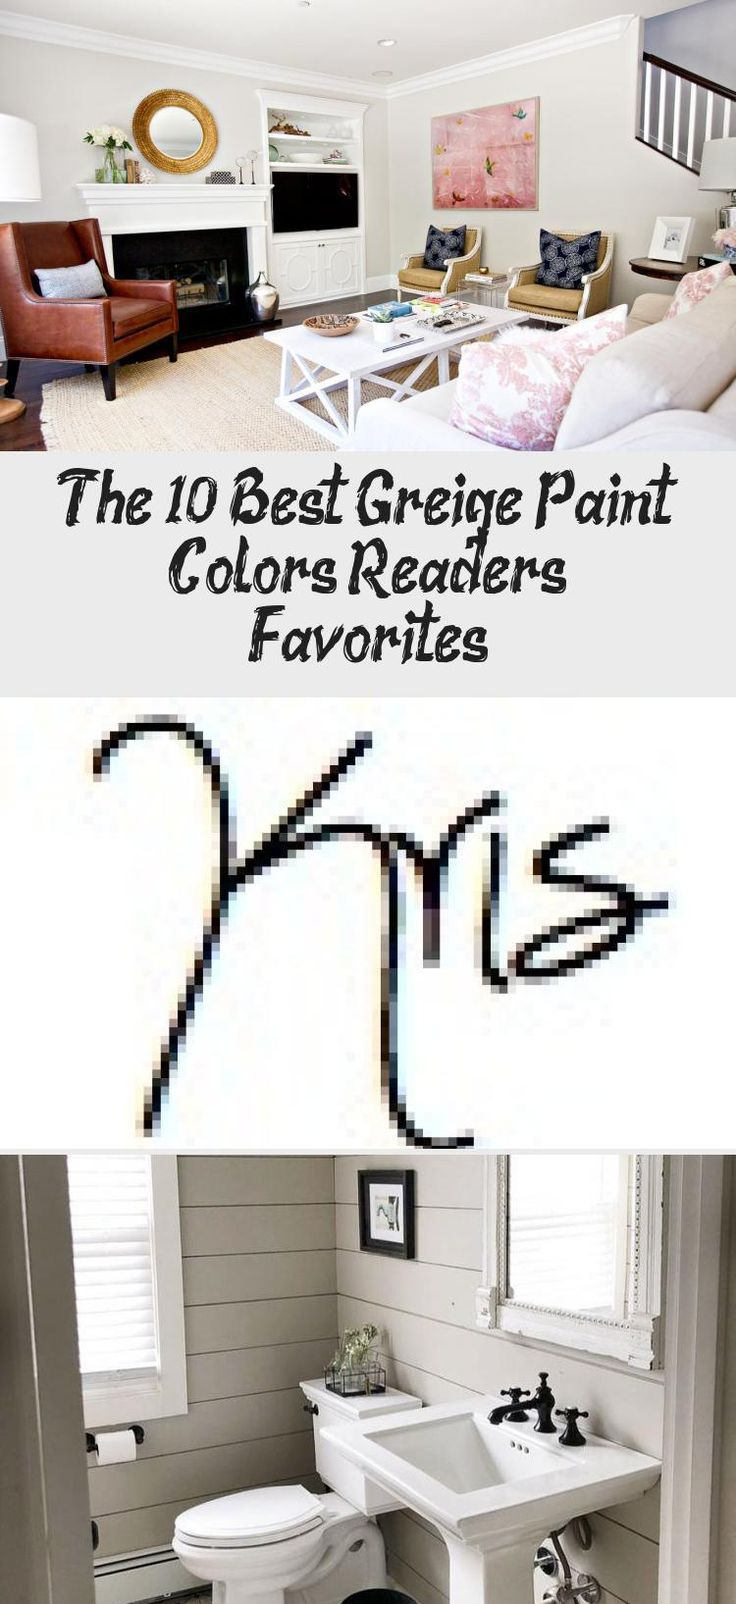 the 10 best greige paint colors readers favorites in on 10 most popular paint colors id=16409